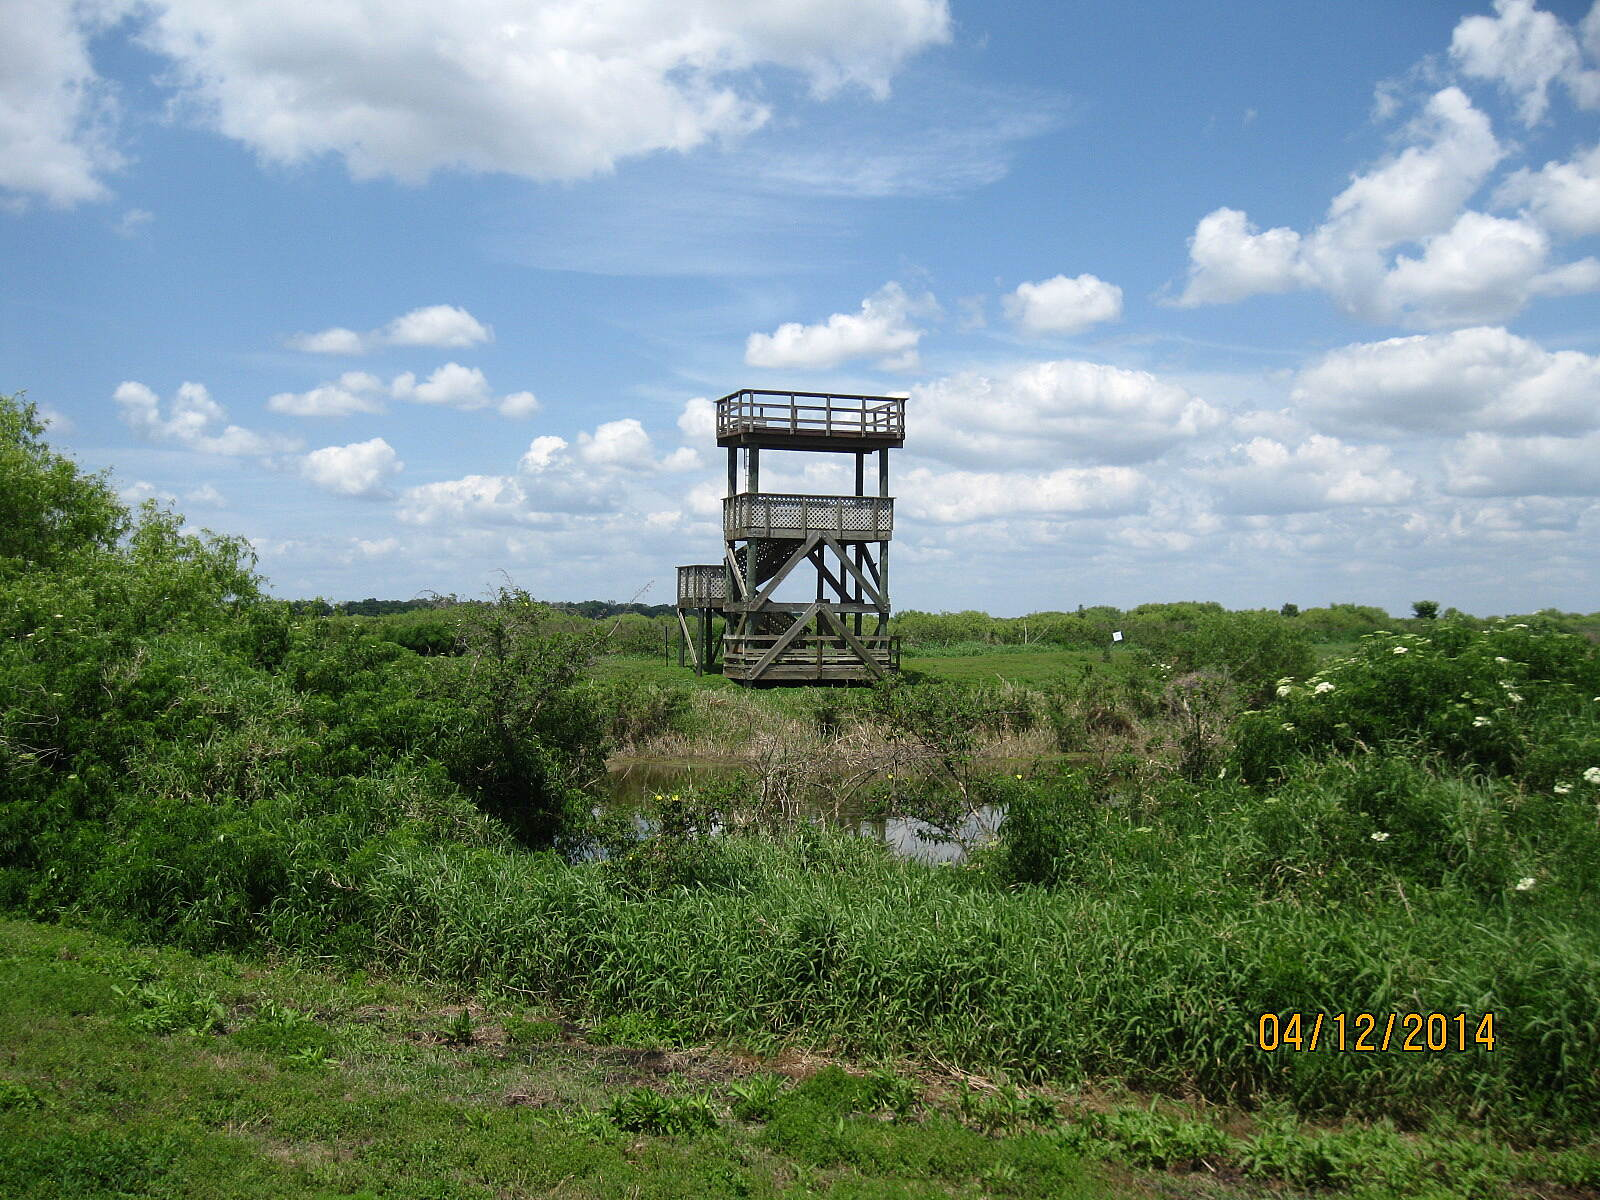 Lake Apopka Loop Trail Observation Tower This observation tower, located about a mile east of the Clay Island trailhead, is accessible from the trail.